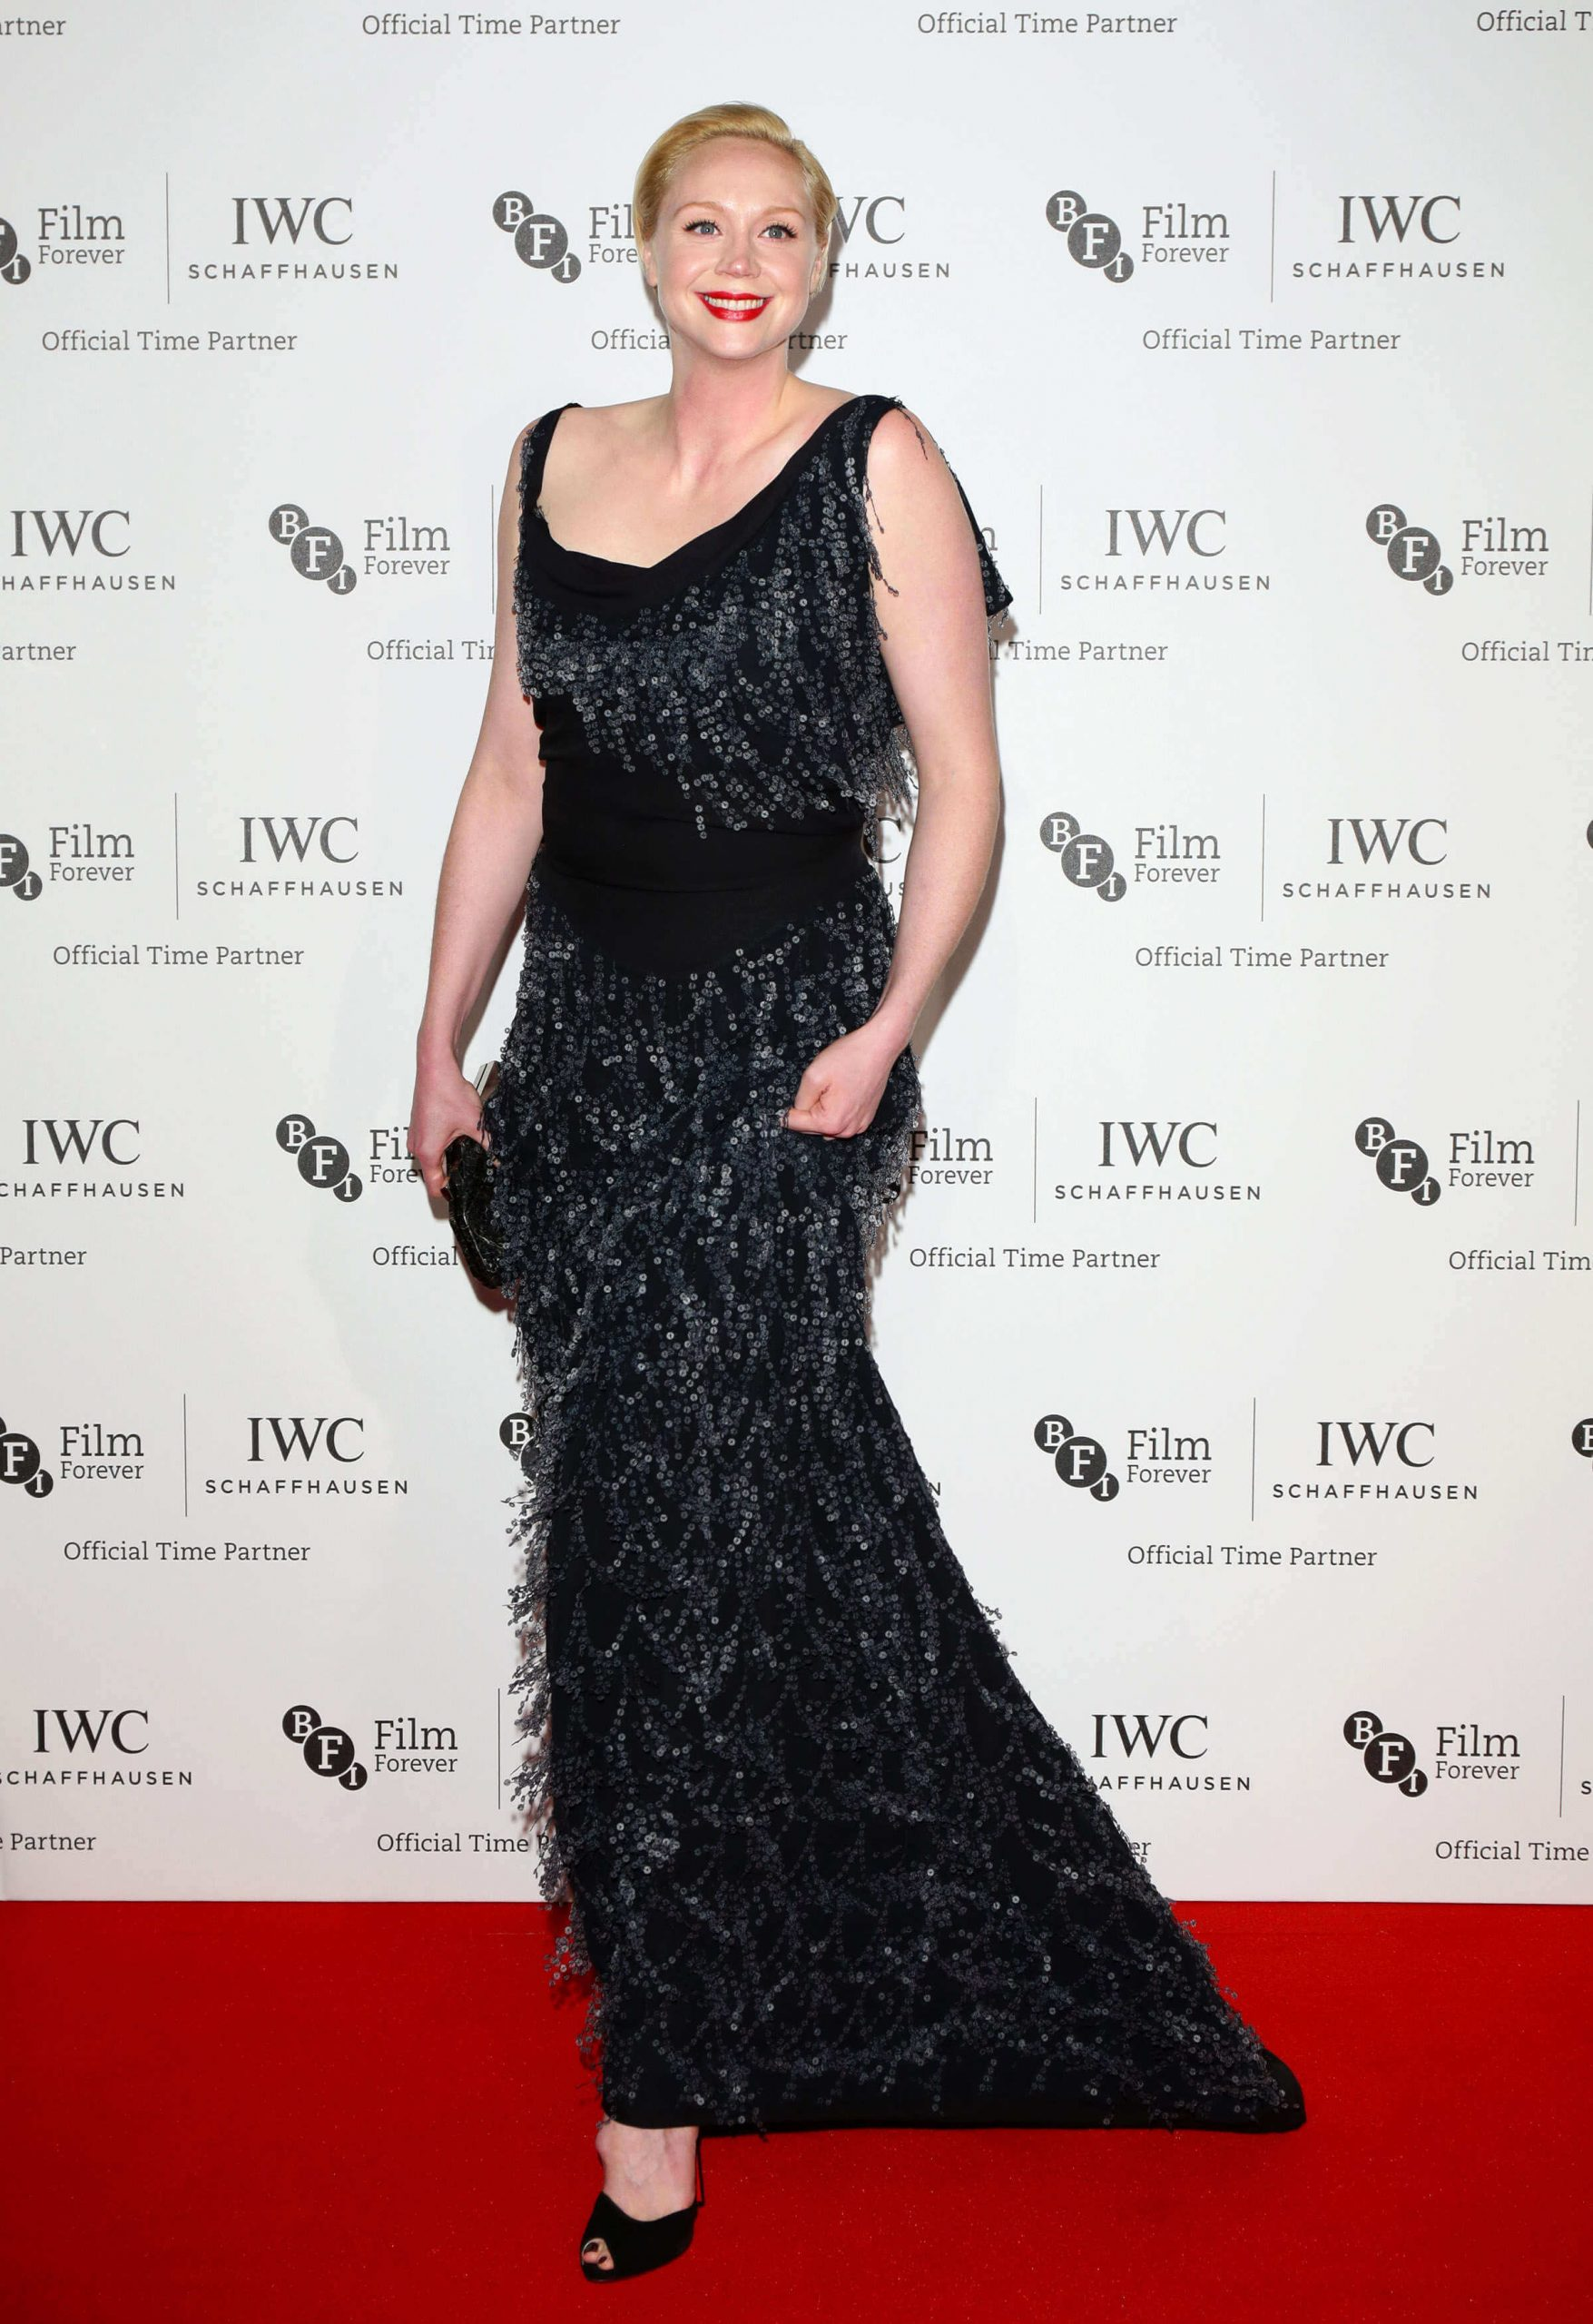 48 Gwendoline Christie Nude Pictures Will Make You Crave For More 20